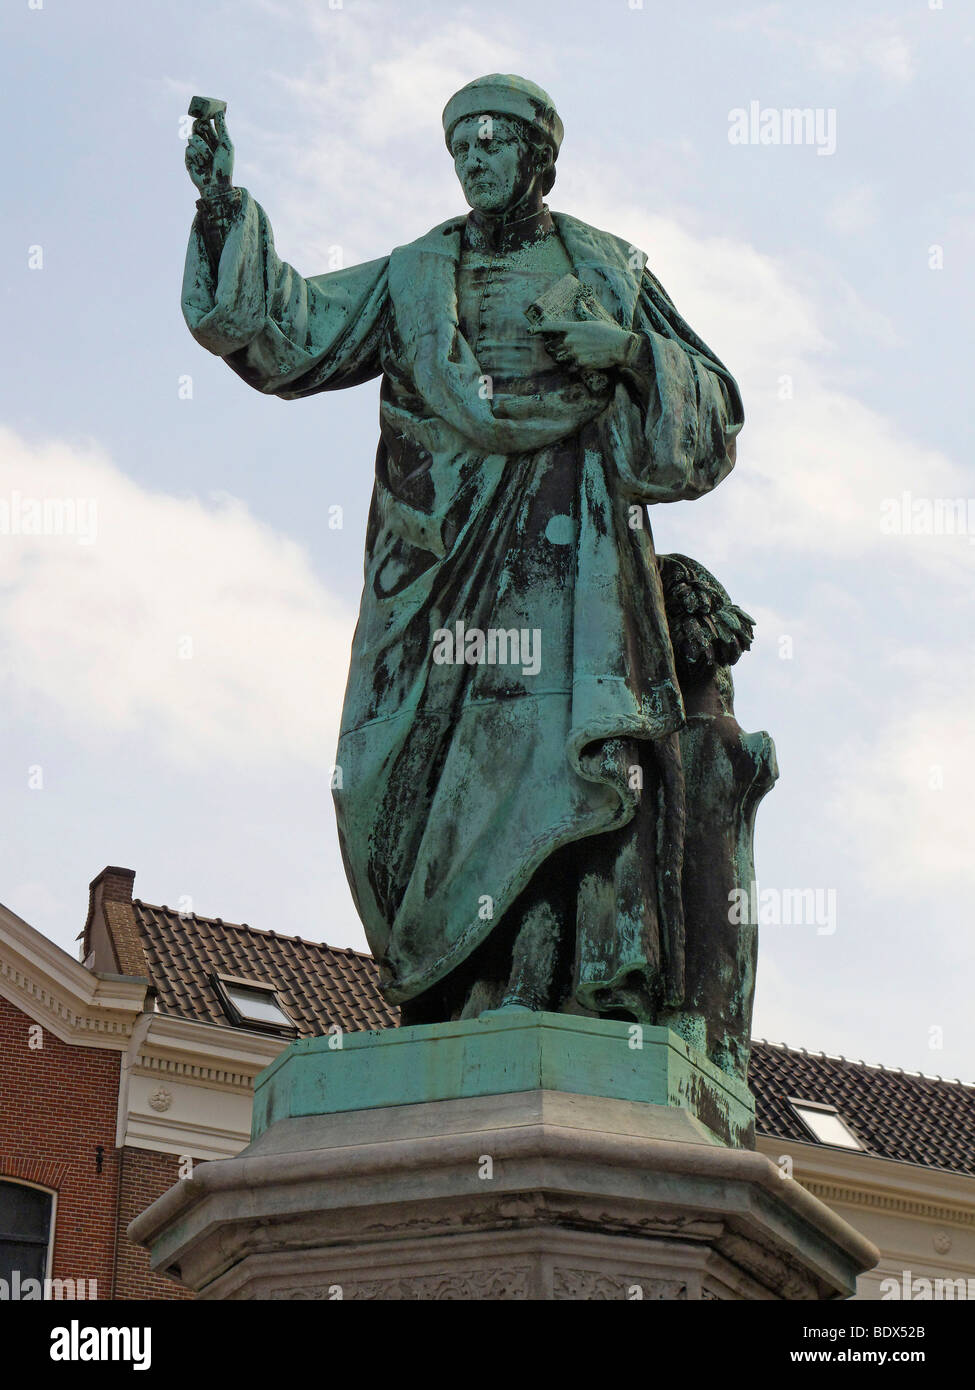 Statue of Laurens Janszoon Coster, who is locally claimed to have invented printing before Gutenberg, Grote Markt, - Stock Image